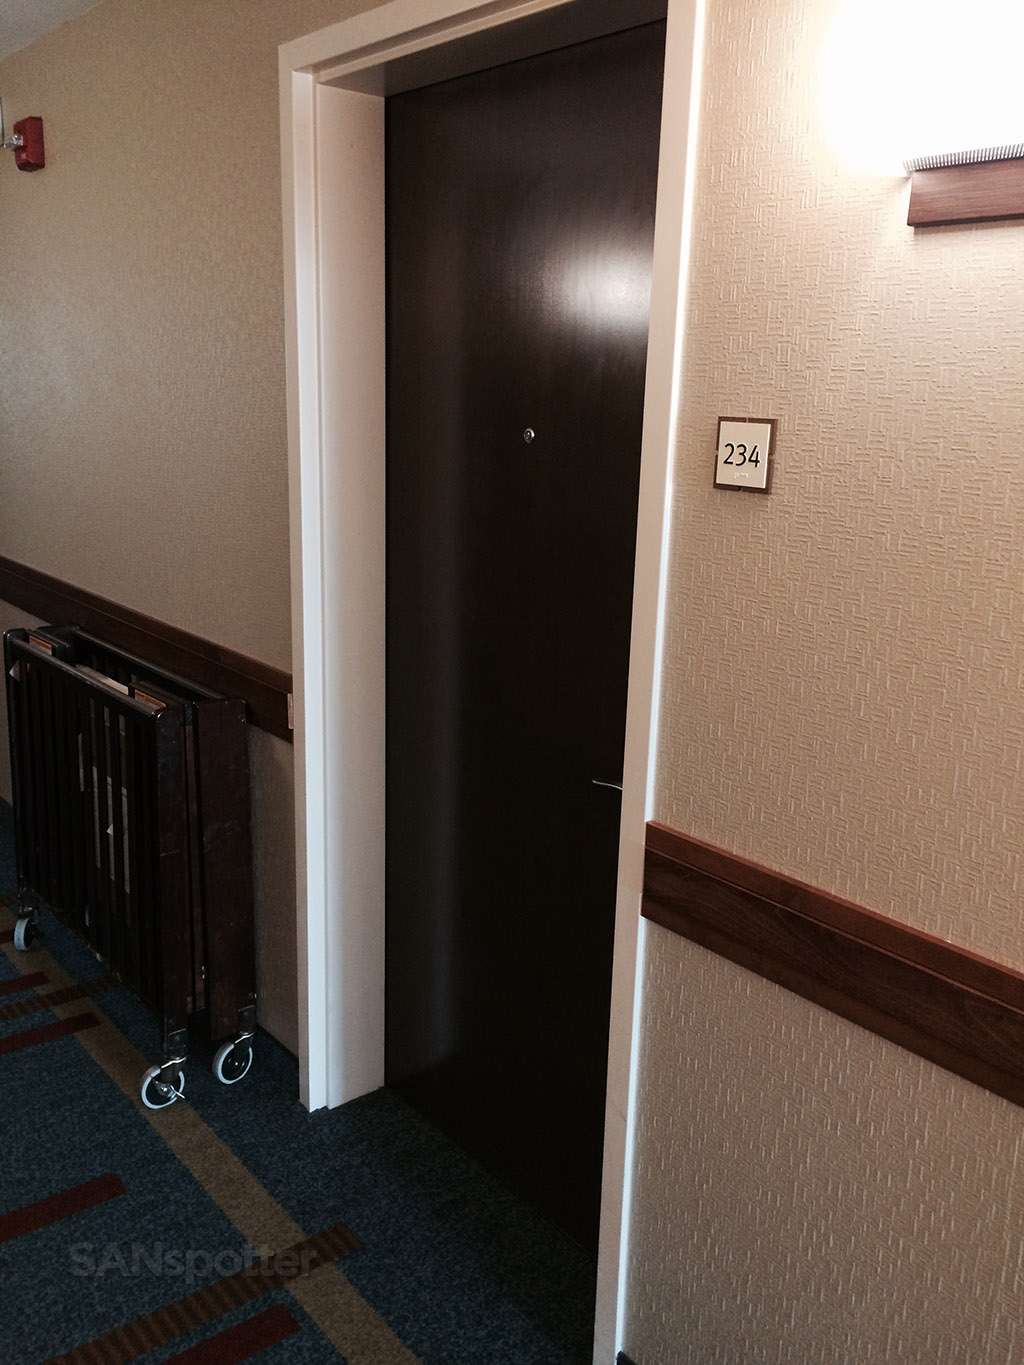 hyatt house room door